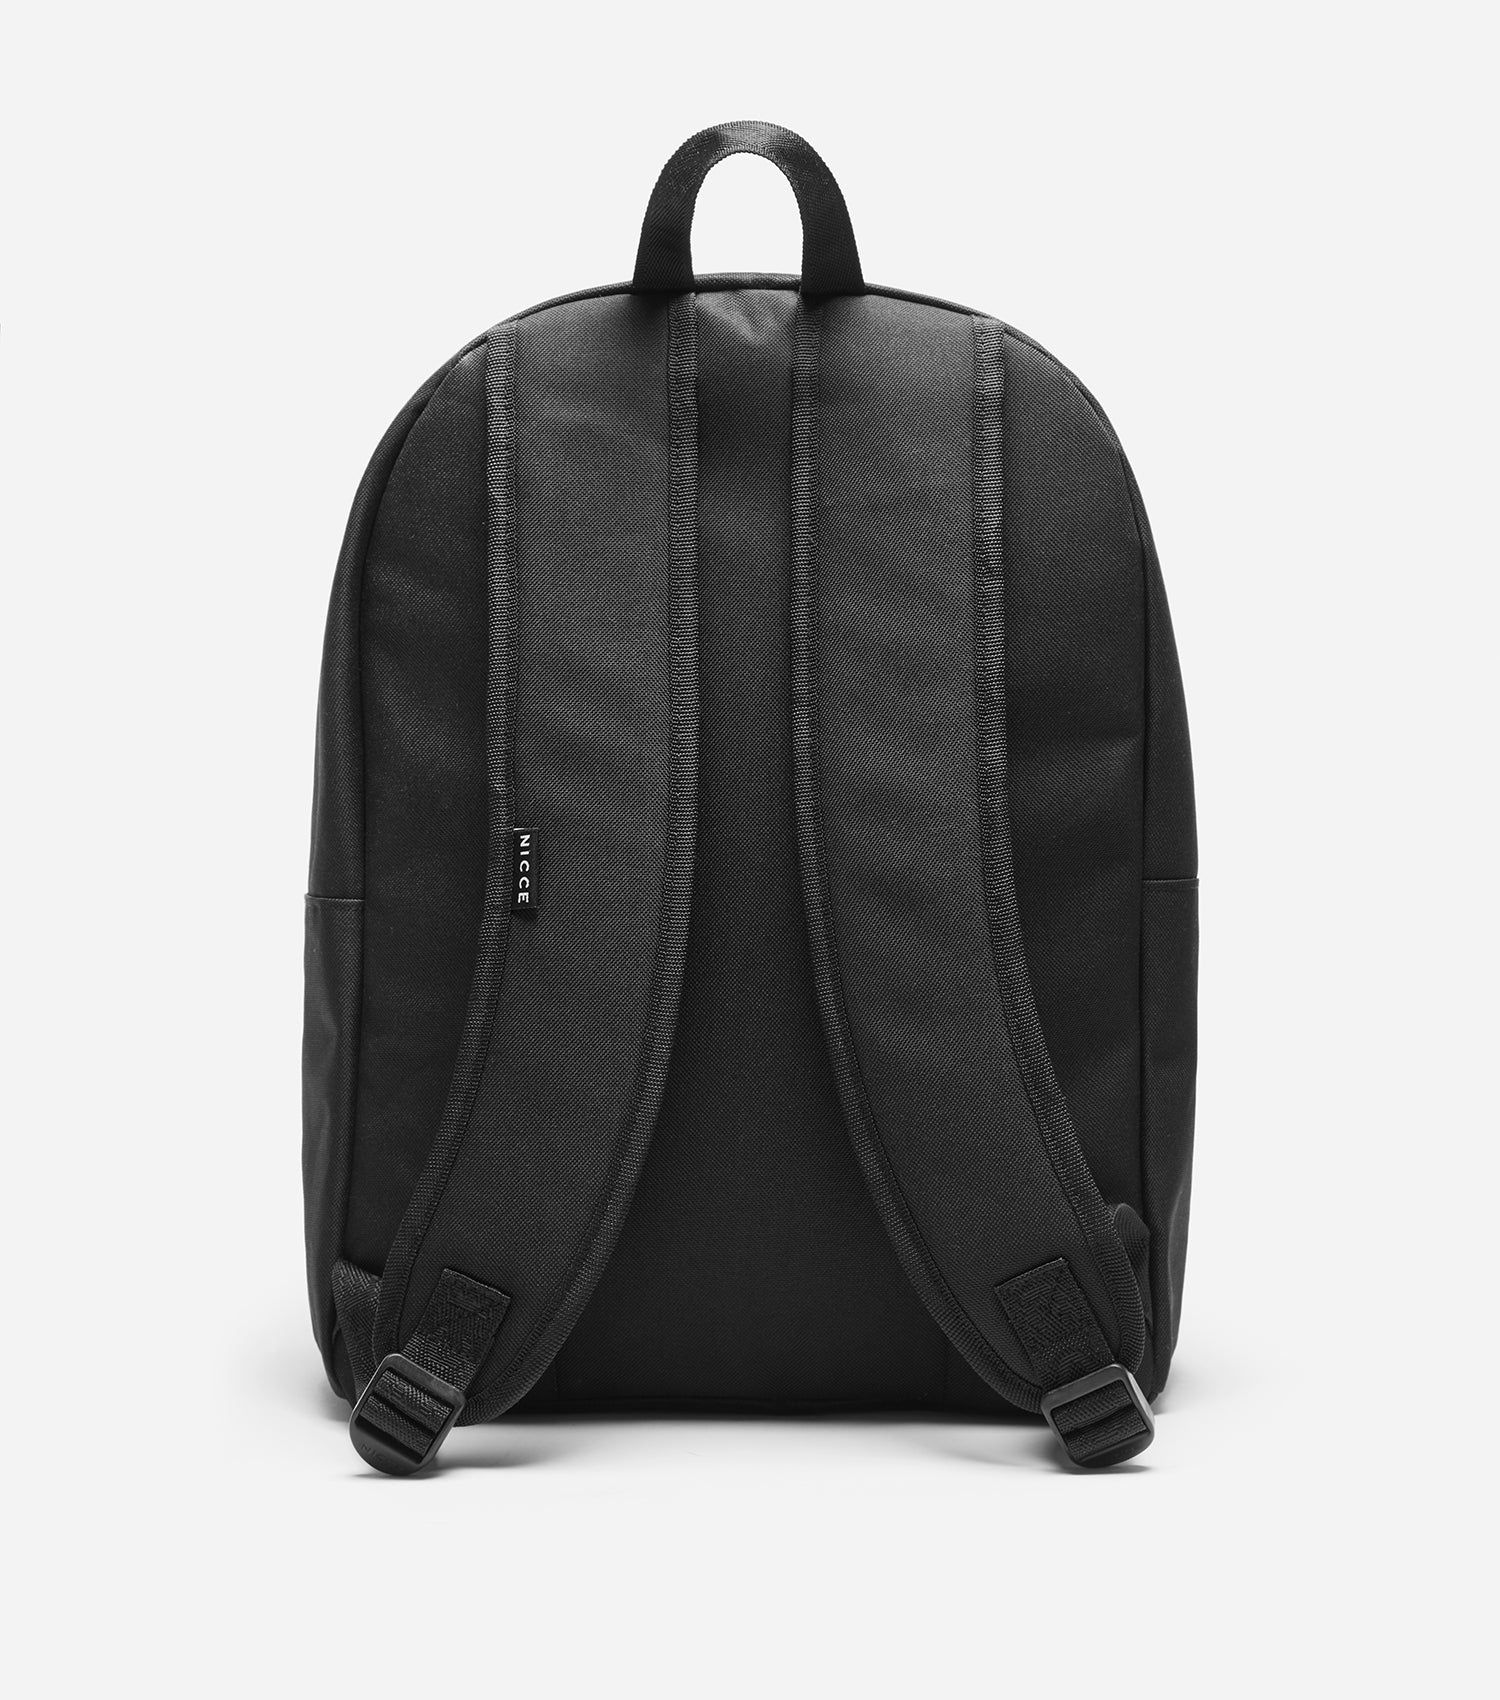 NICCE Osmium Backpack | Black / Coal, Bags